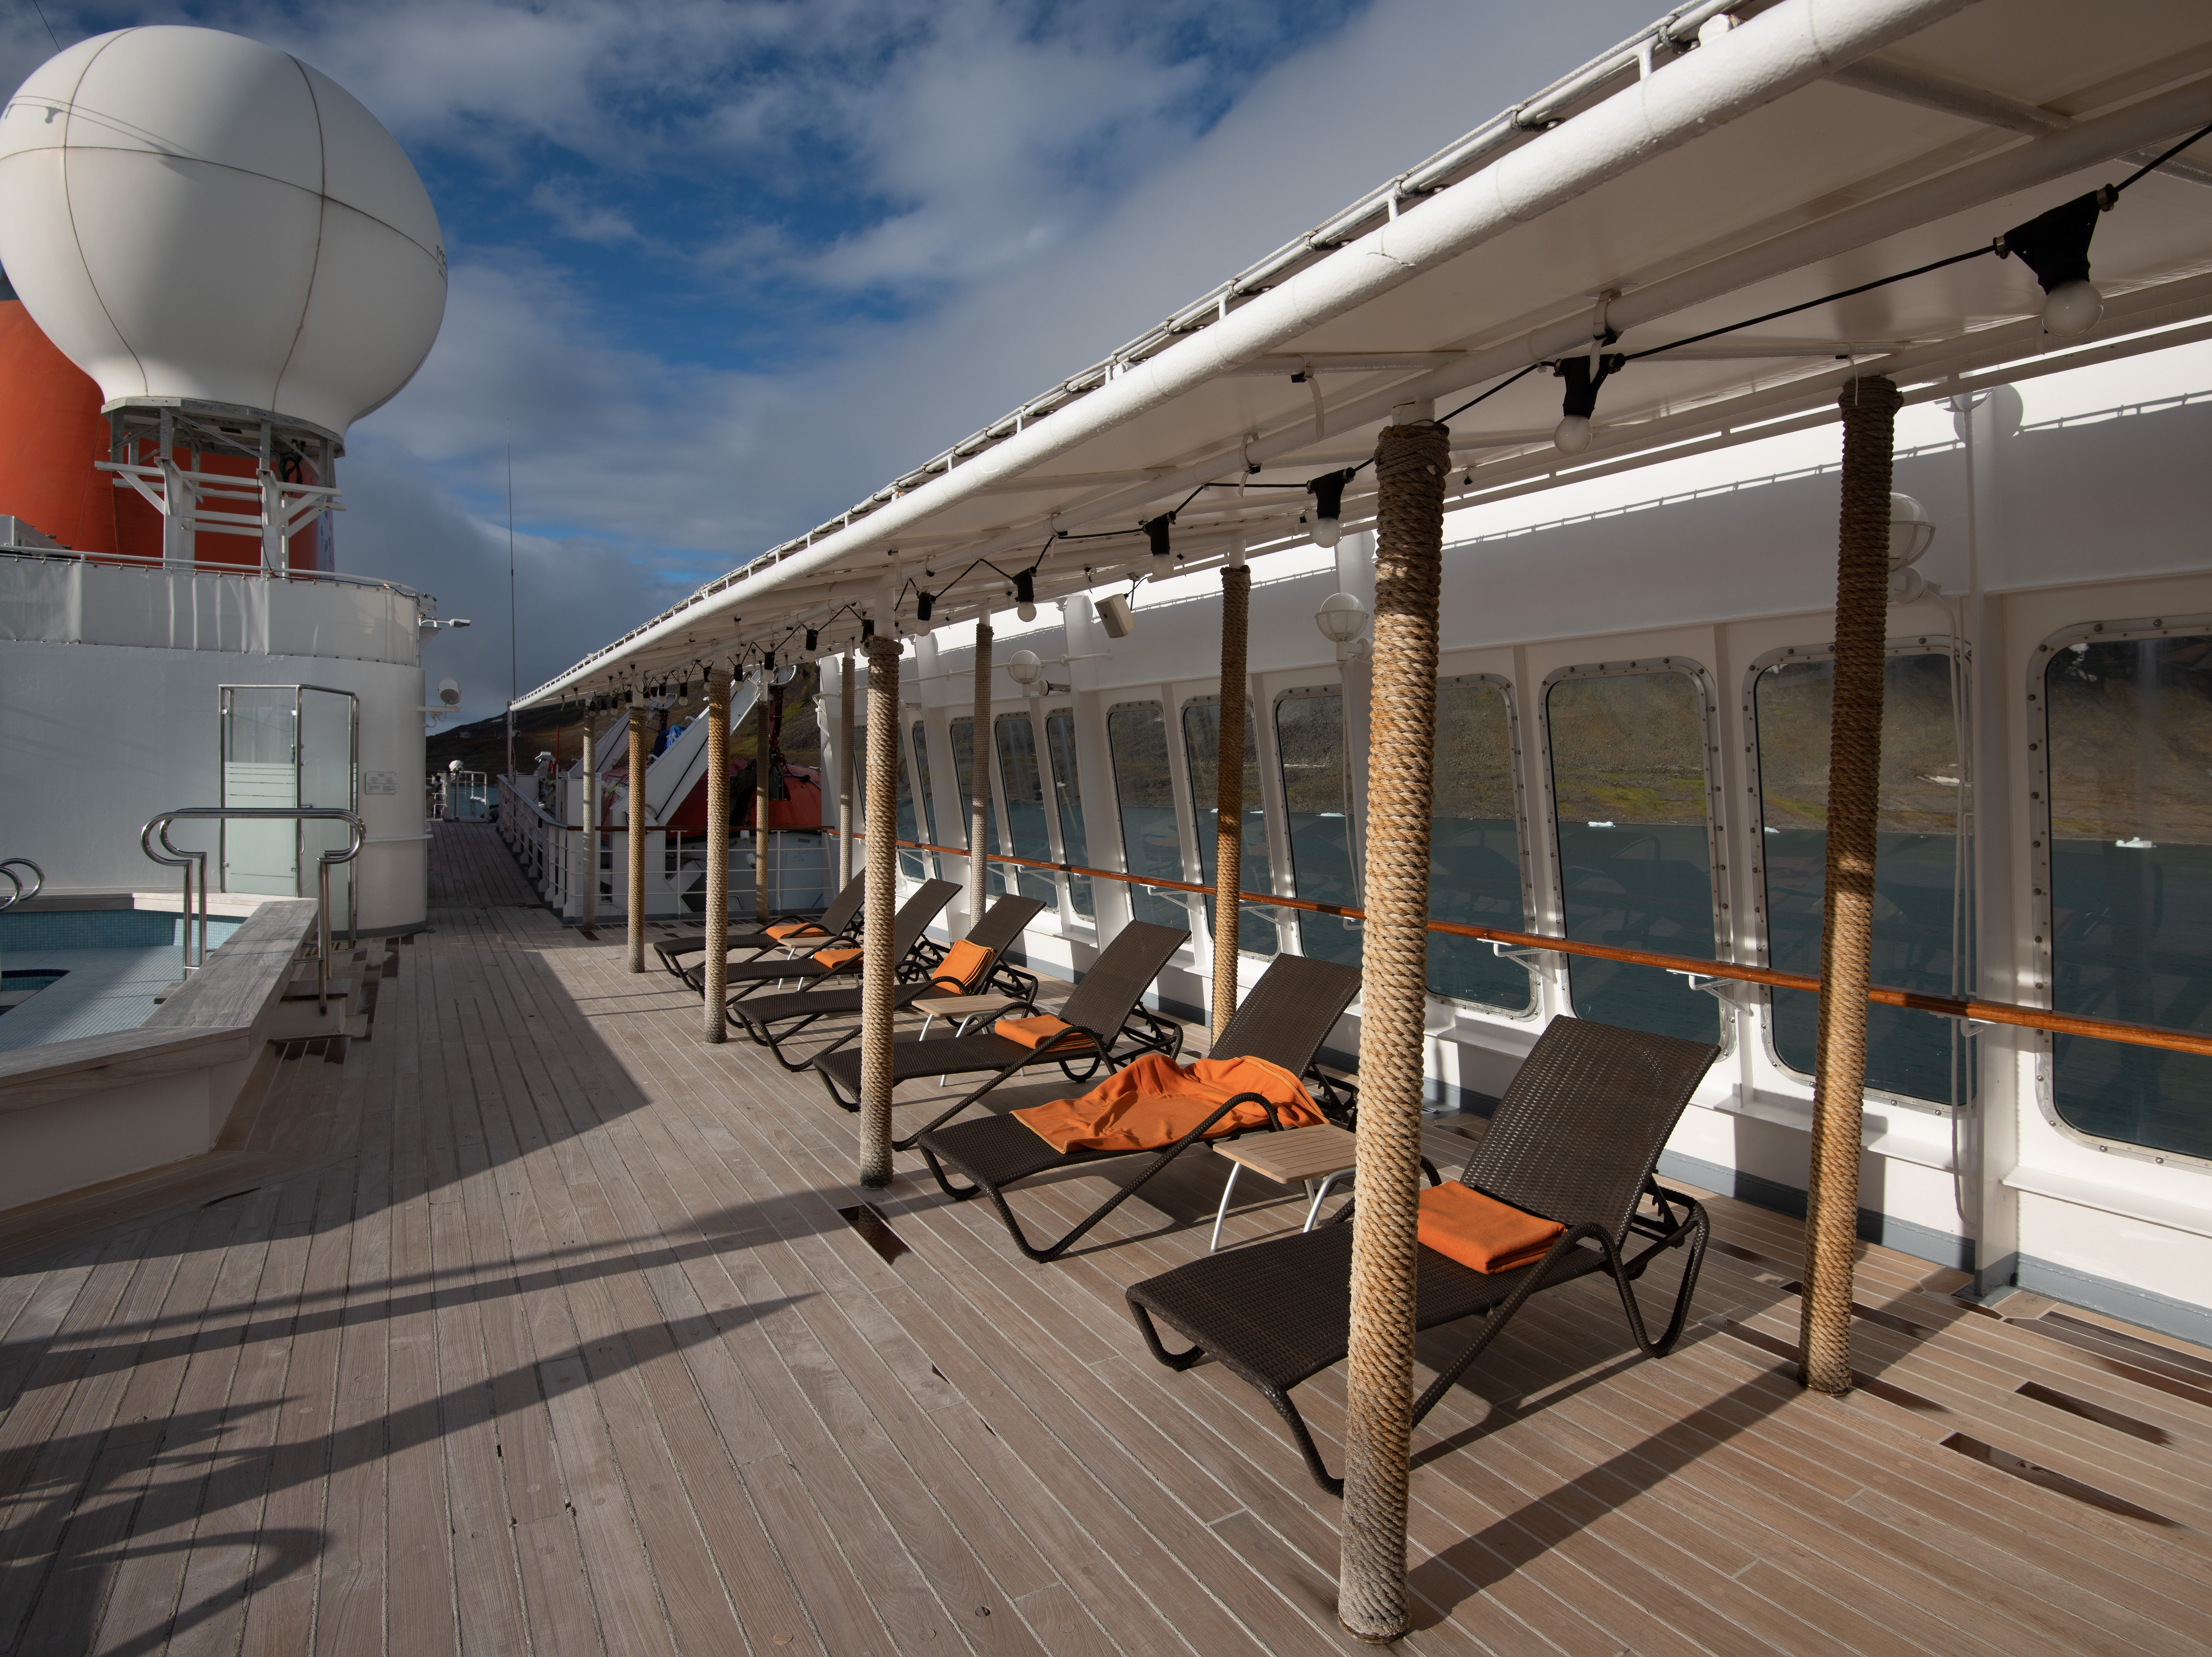 An attendant places towels on the Sun Decks lounge chairs daily, even when Bremen is sailing in the frigid waters of the Arctic.